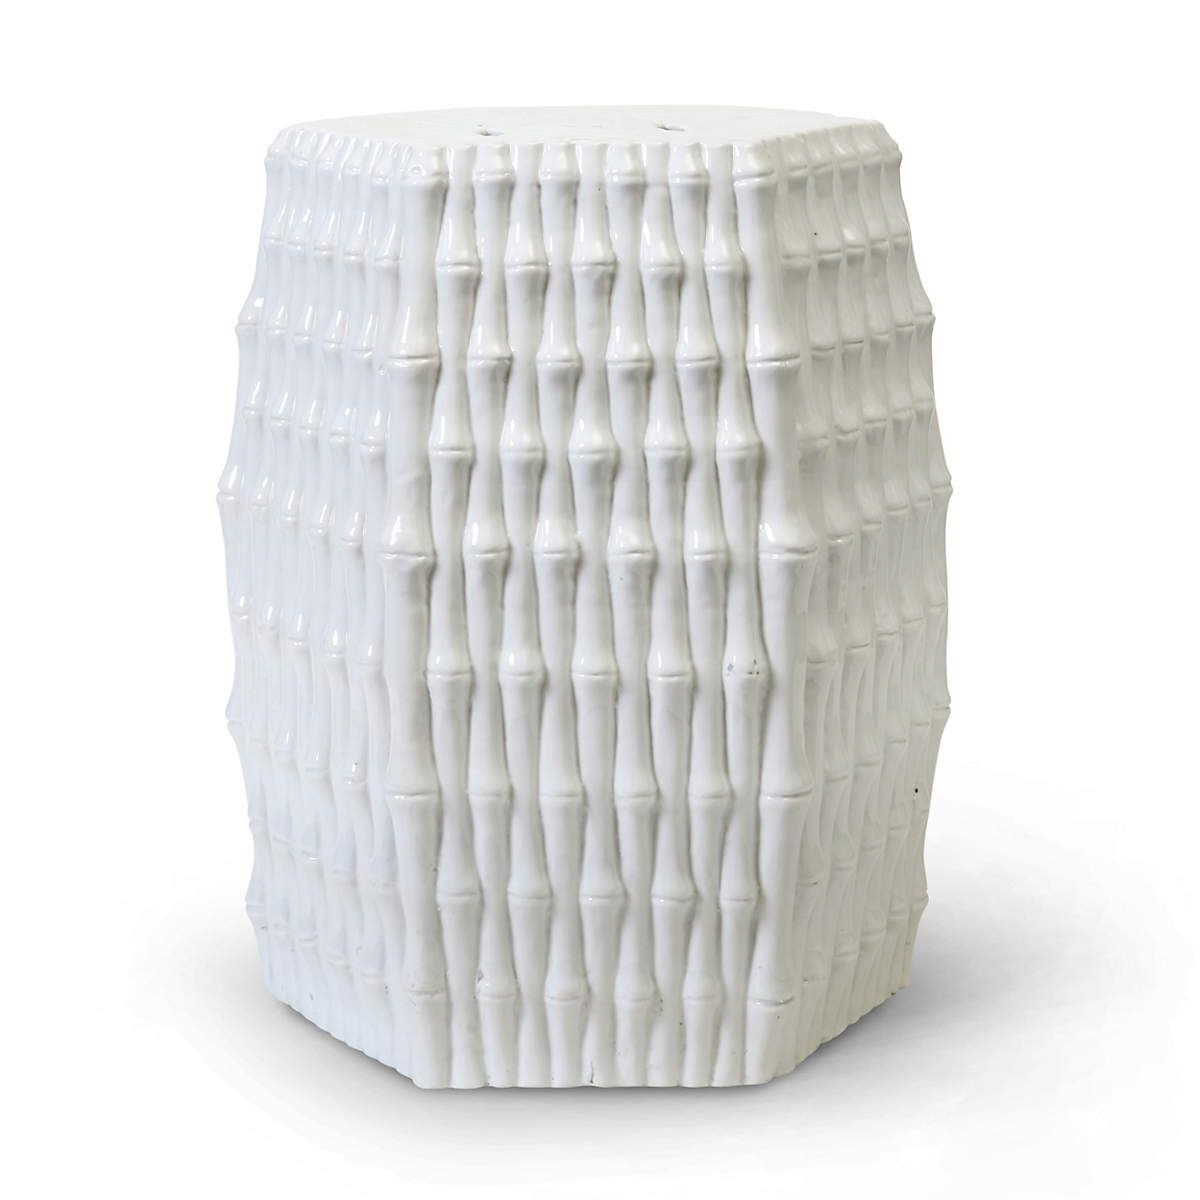 white oasis ceramic garden stool stools and accent table seaside lamps outside patio cast aluminum coffee tall bedside tables with drawers low outdoor deck chairs round tablecloth